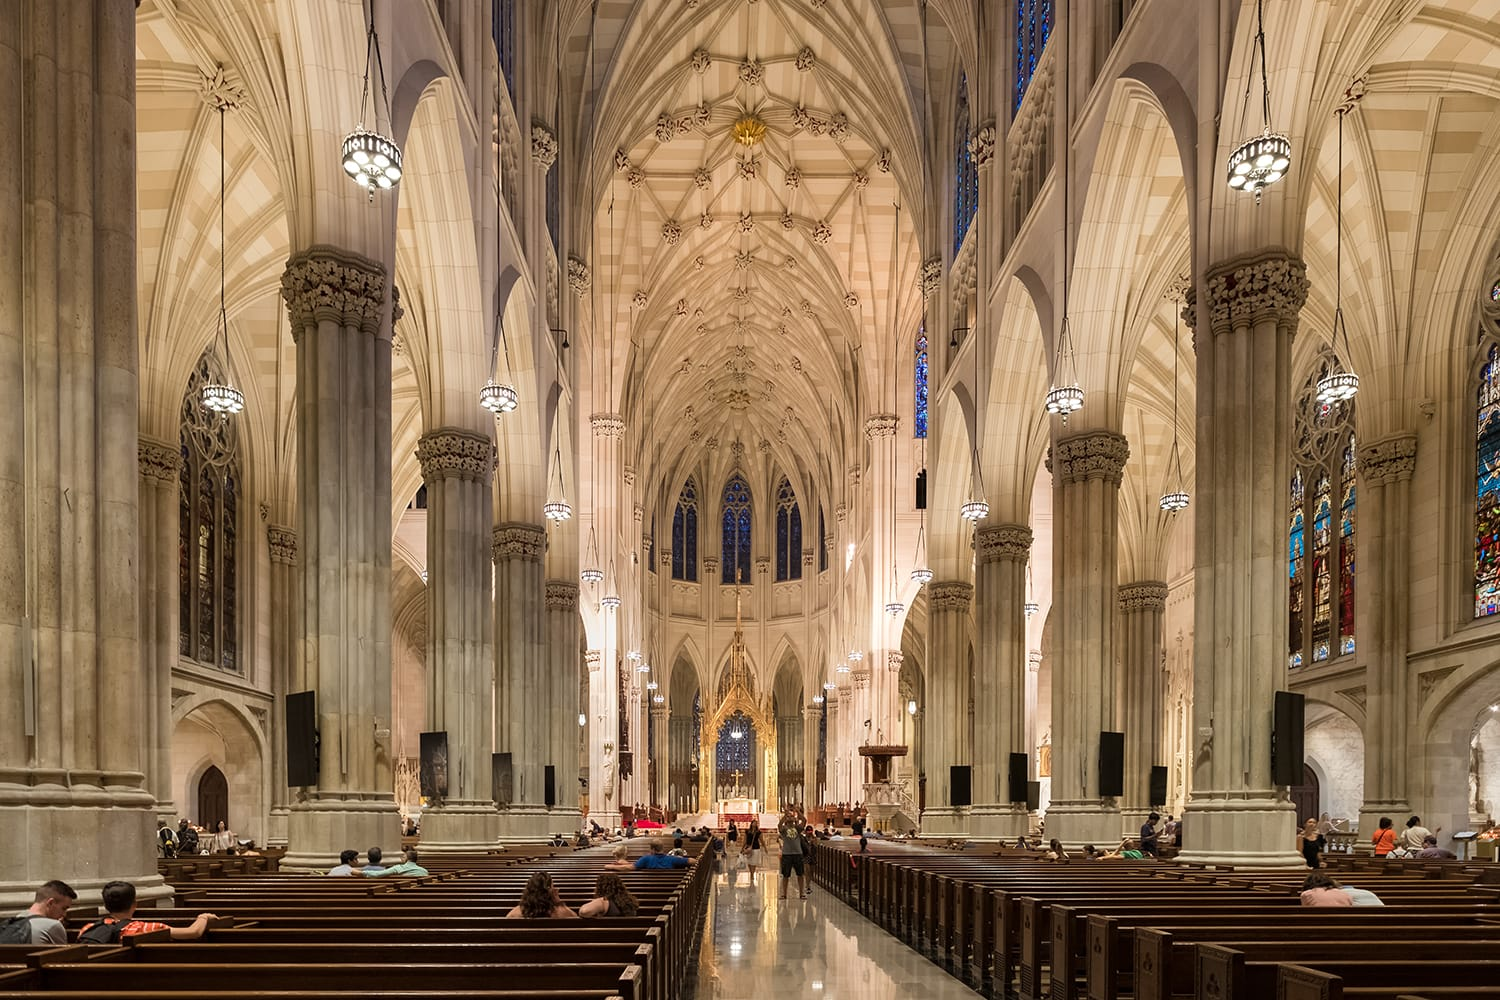 Interior of Saint Patrick's Cathedral in New York City, USA